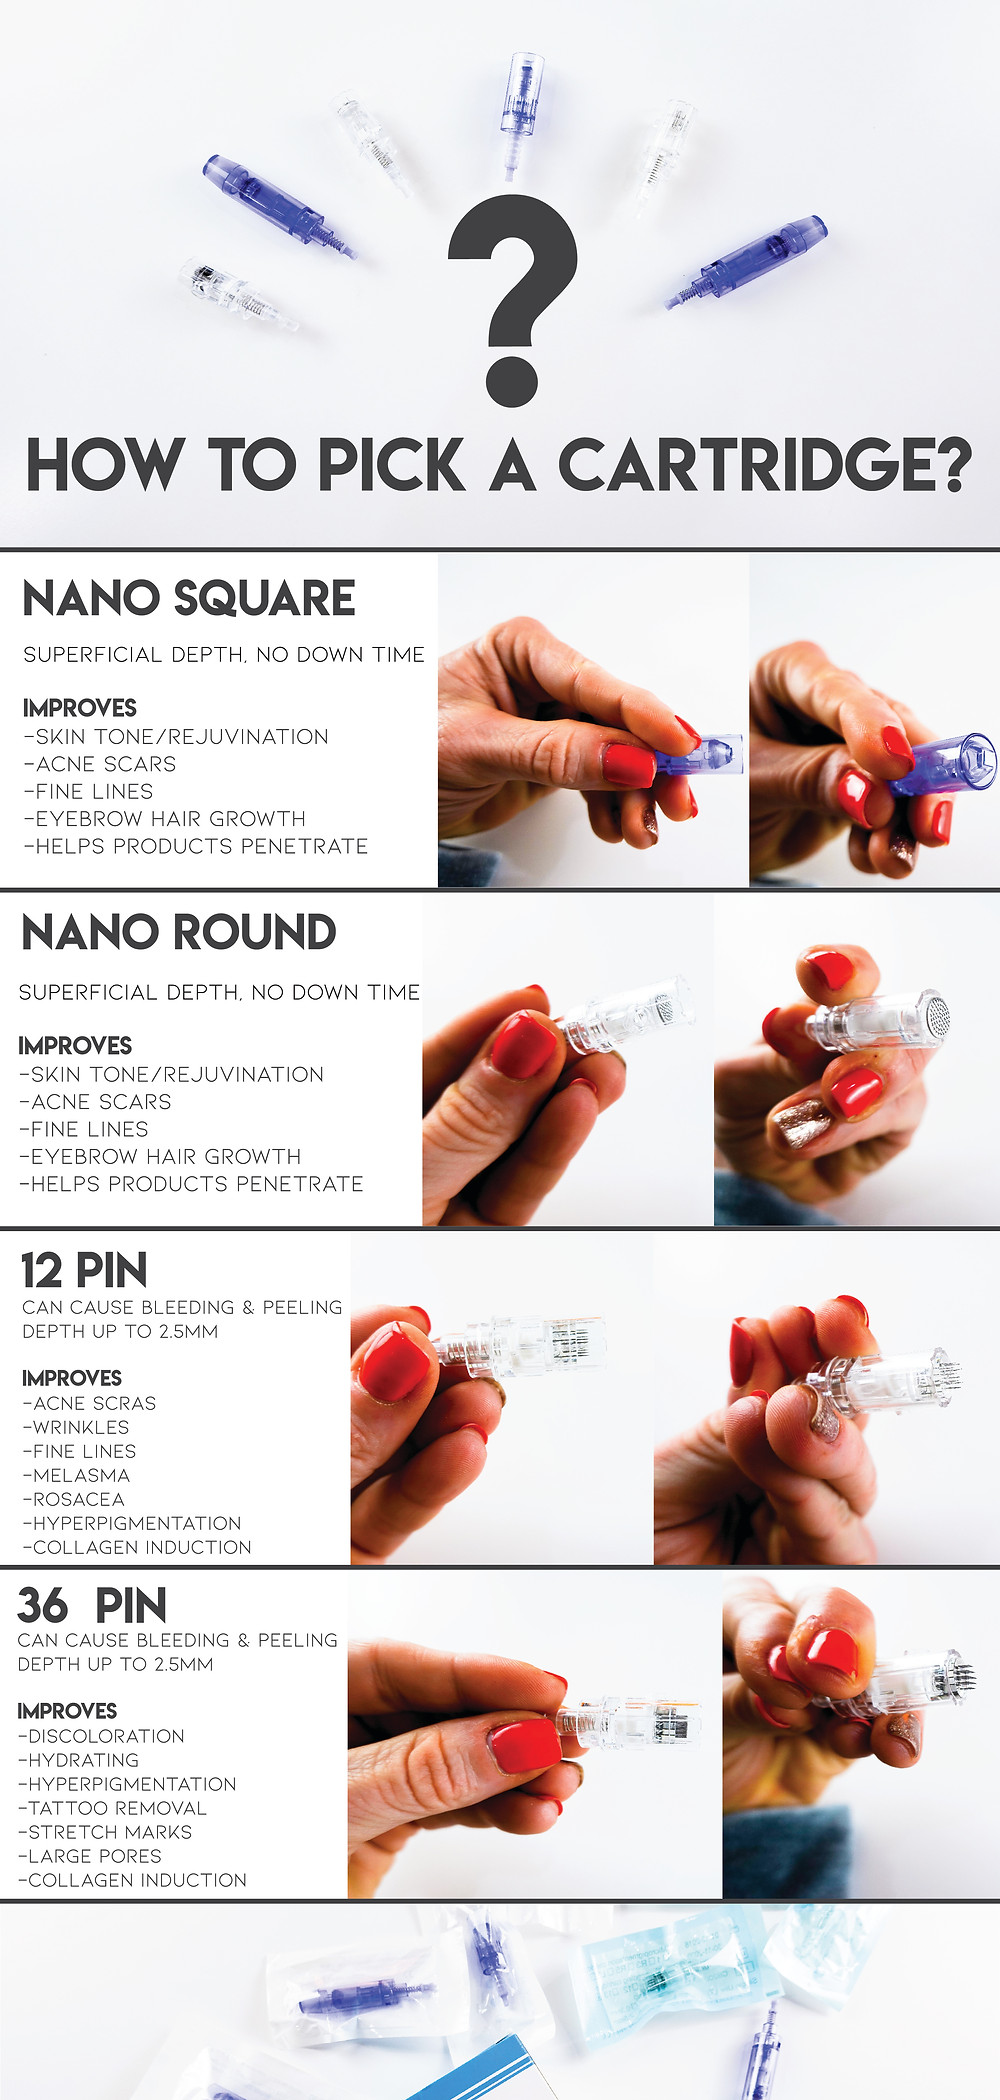 Nano Round, Nano Square, 12 Pin and 36 Pin Microneedling cartridges compared.